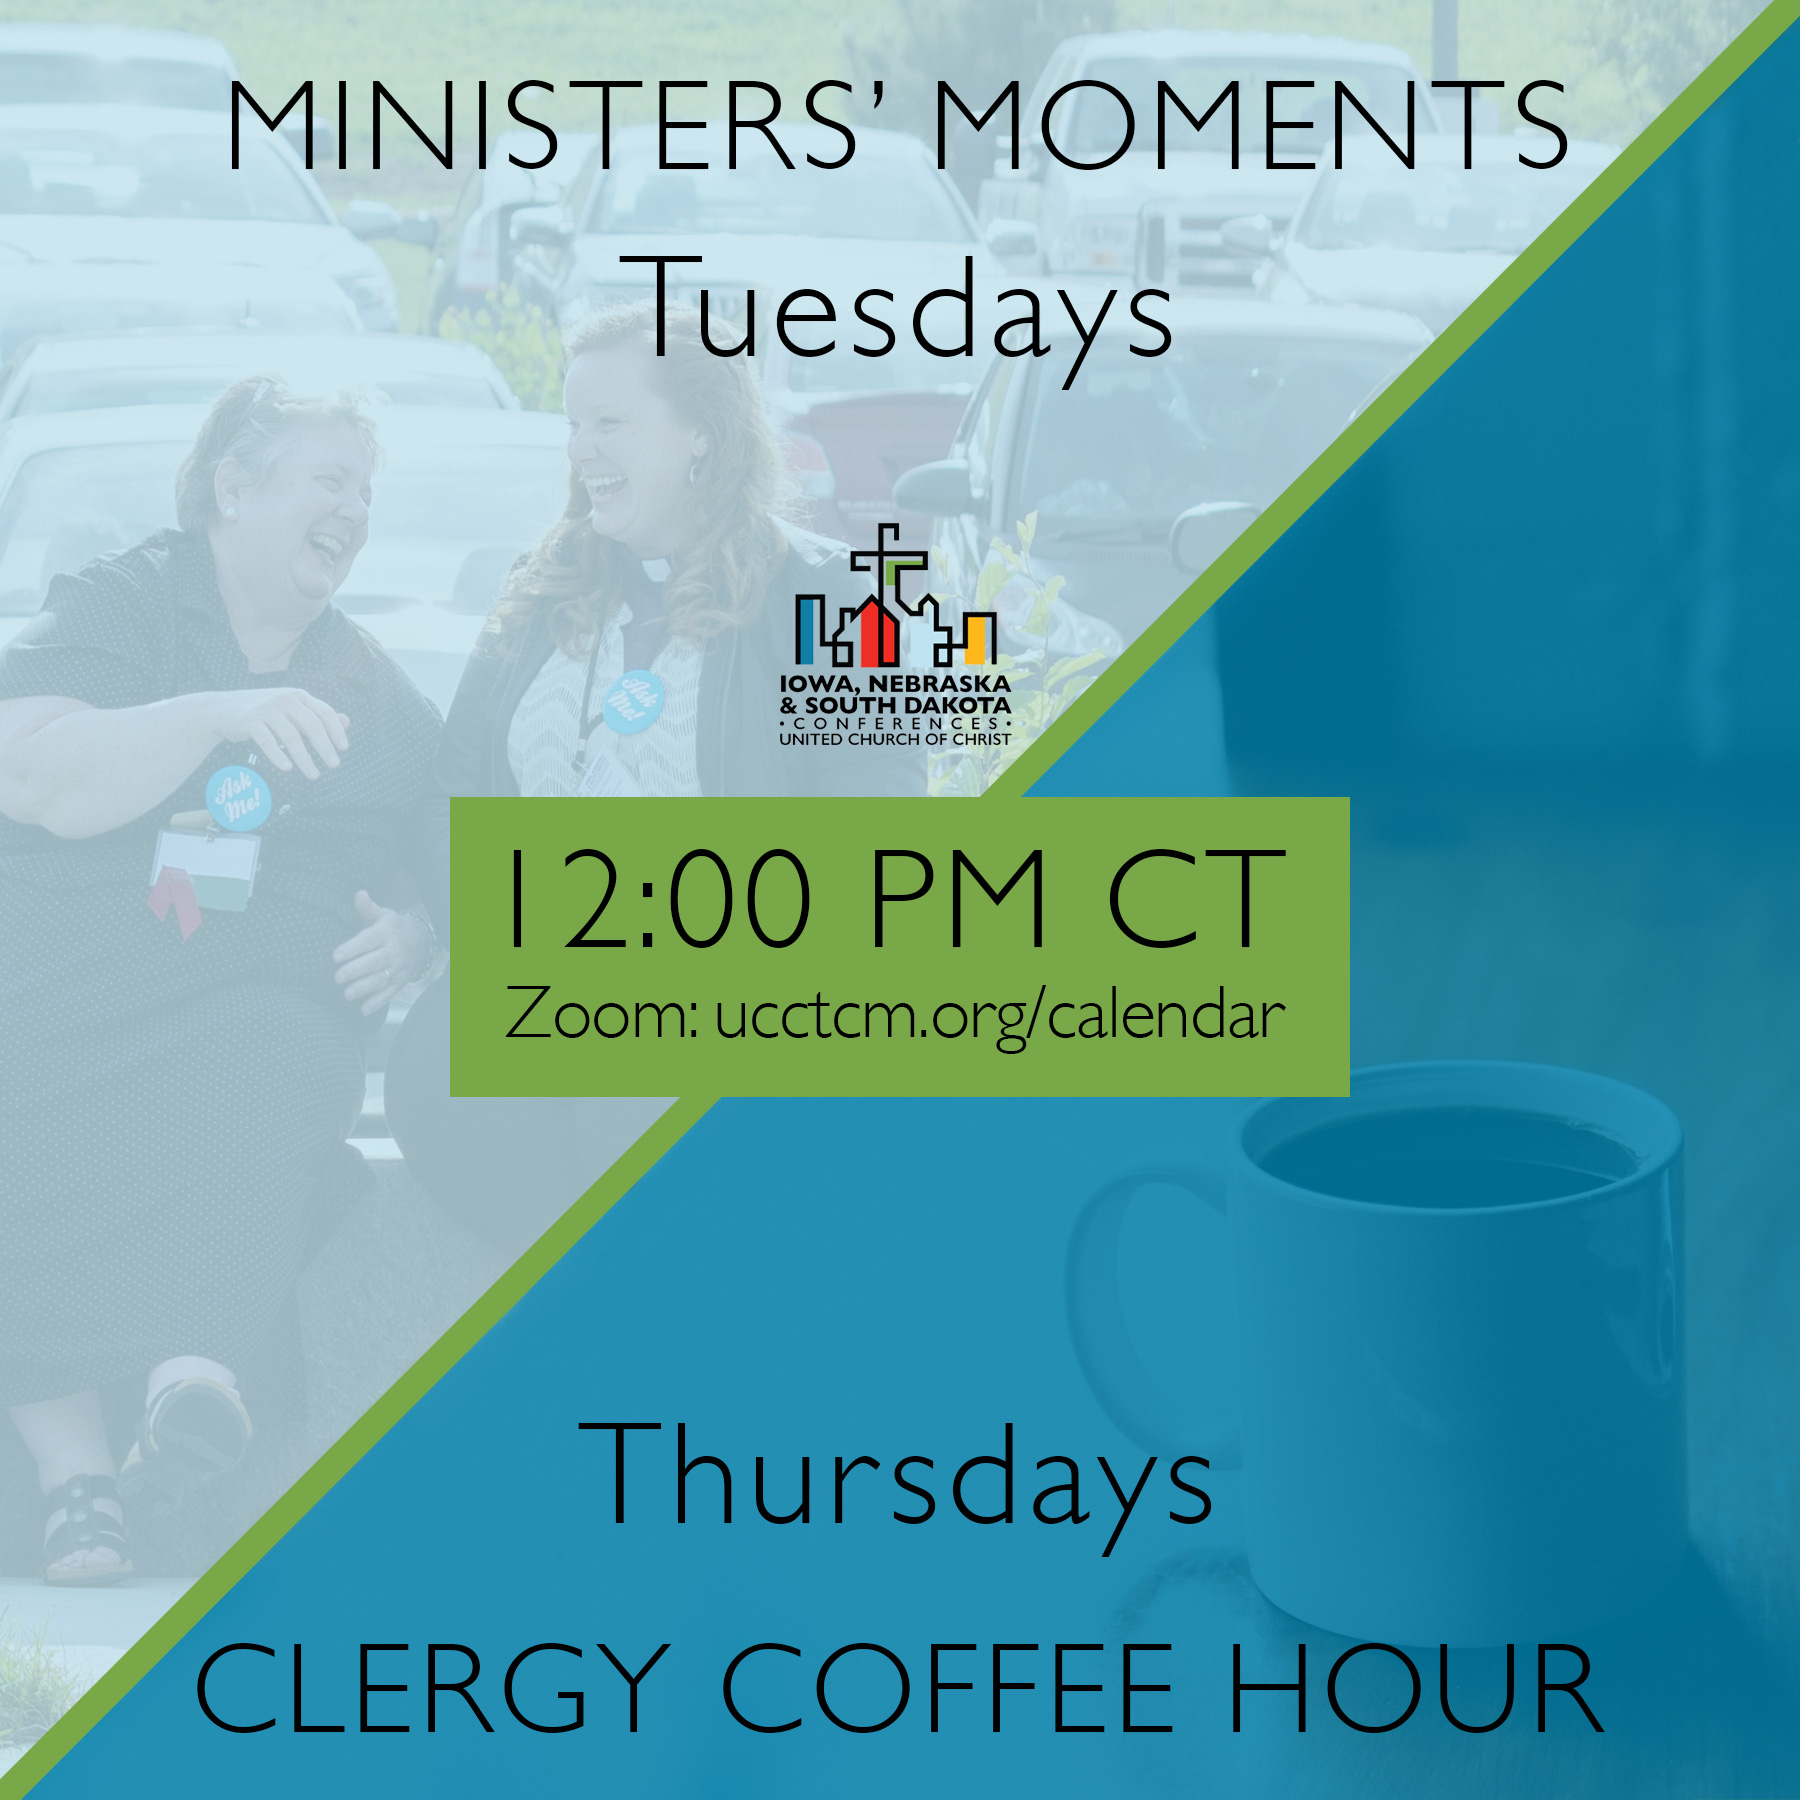 Clergy leaders in our Conferences can meet for online discussion with our ministerial staff at 12:00pm CT on Tuesdays and for fellowship/coffee hour on Thursdays/ Visit www.ucctcm.org/calendar for the Zoom link.